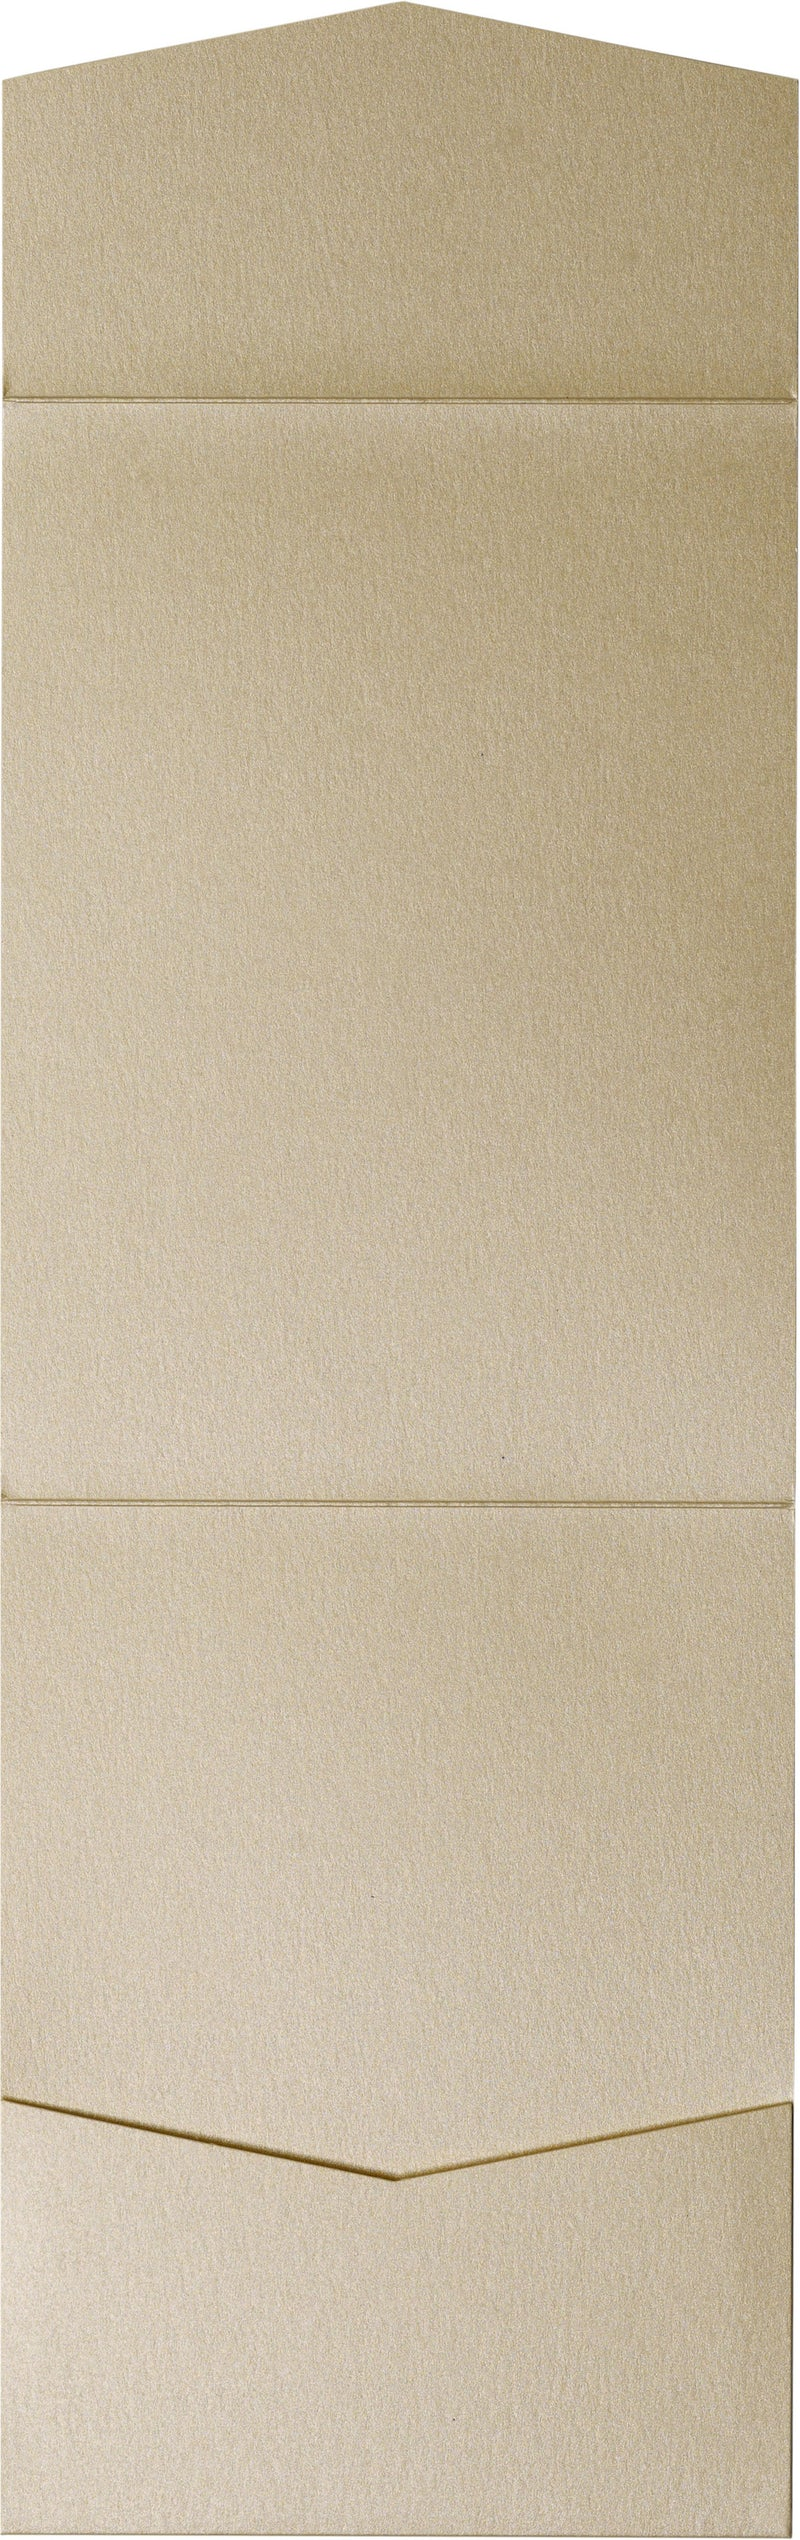 products/a7_beige_sand_metallic_cascade_open-1.jpg